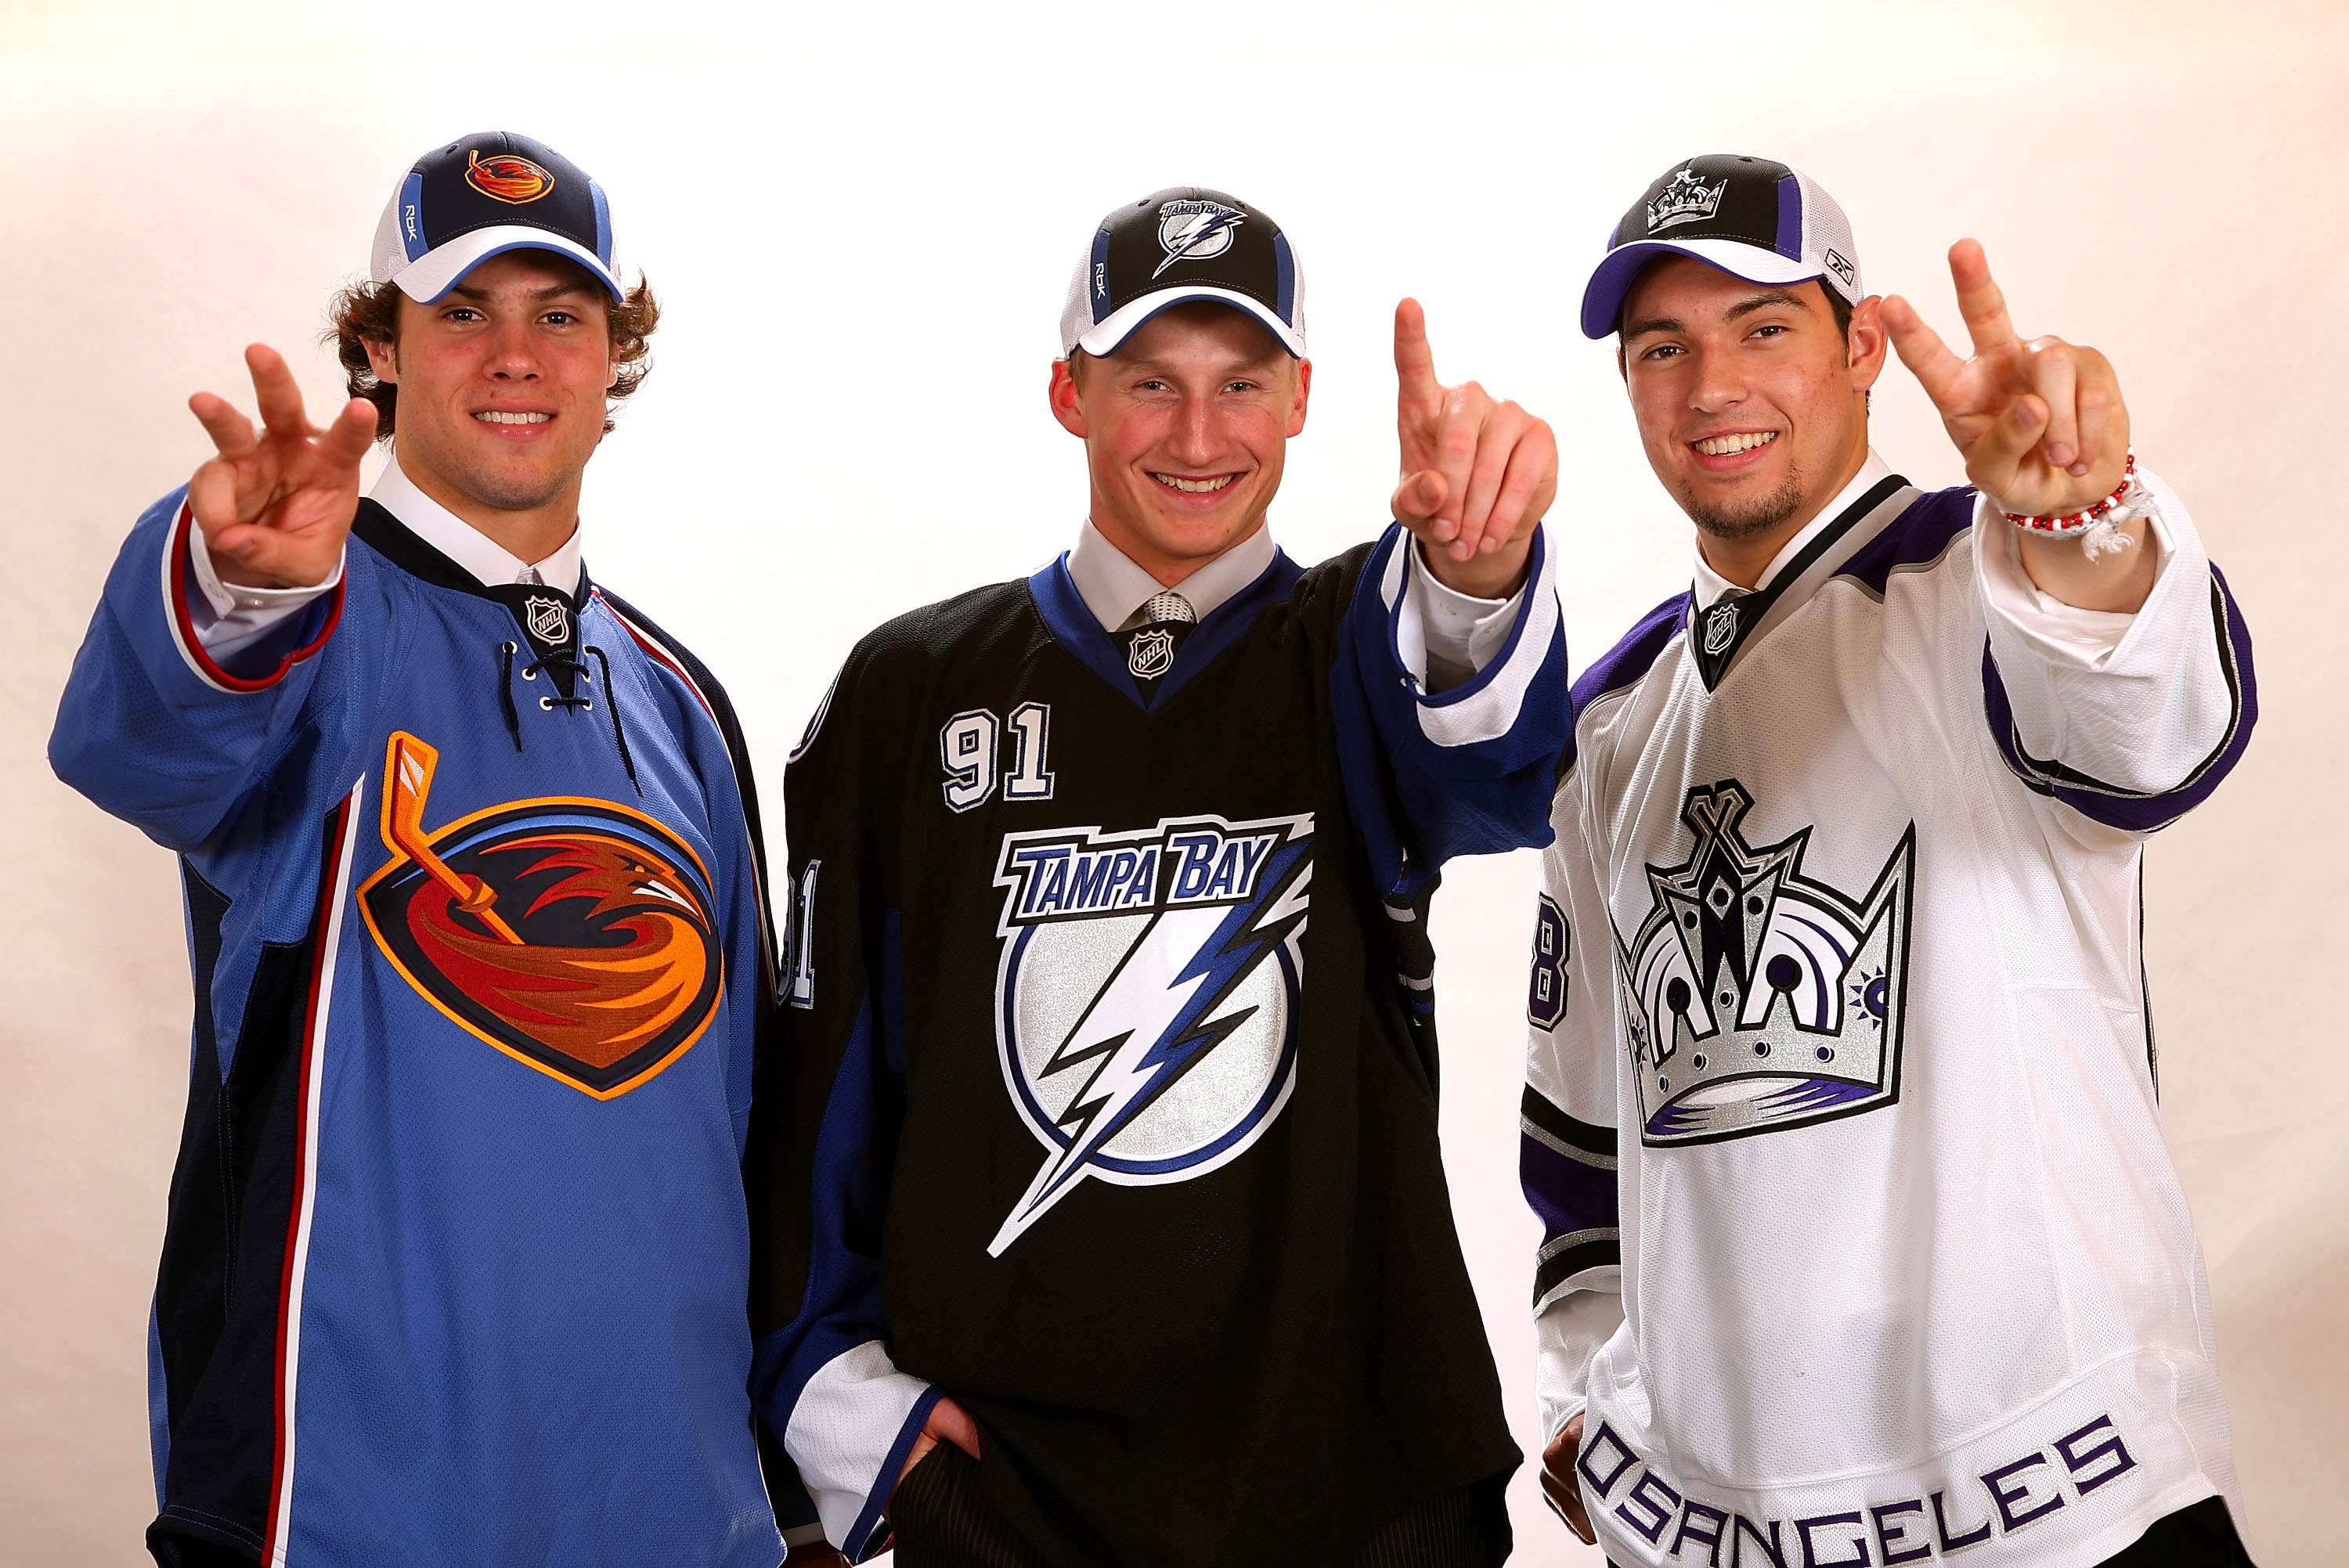 OTTAWA, ON - JUNE 20:  (L-R) Third overall pick Zach Bogosian of the Atlanta Thrashers, first overall pick Steven Stamkos of the Tampa Bay Lightning and second overall pick Drew Doughty of the Los Angeles Kings pose for a photograph after being selected i